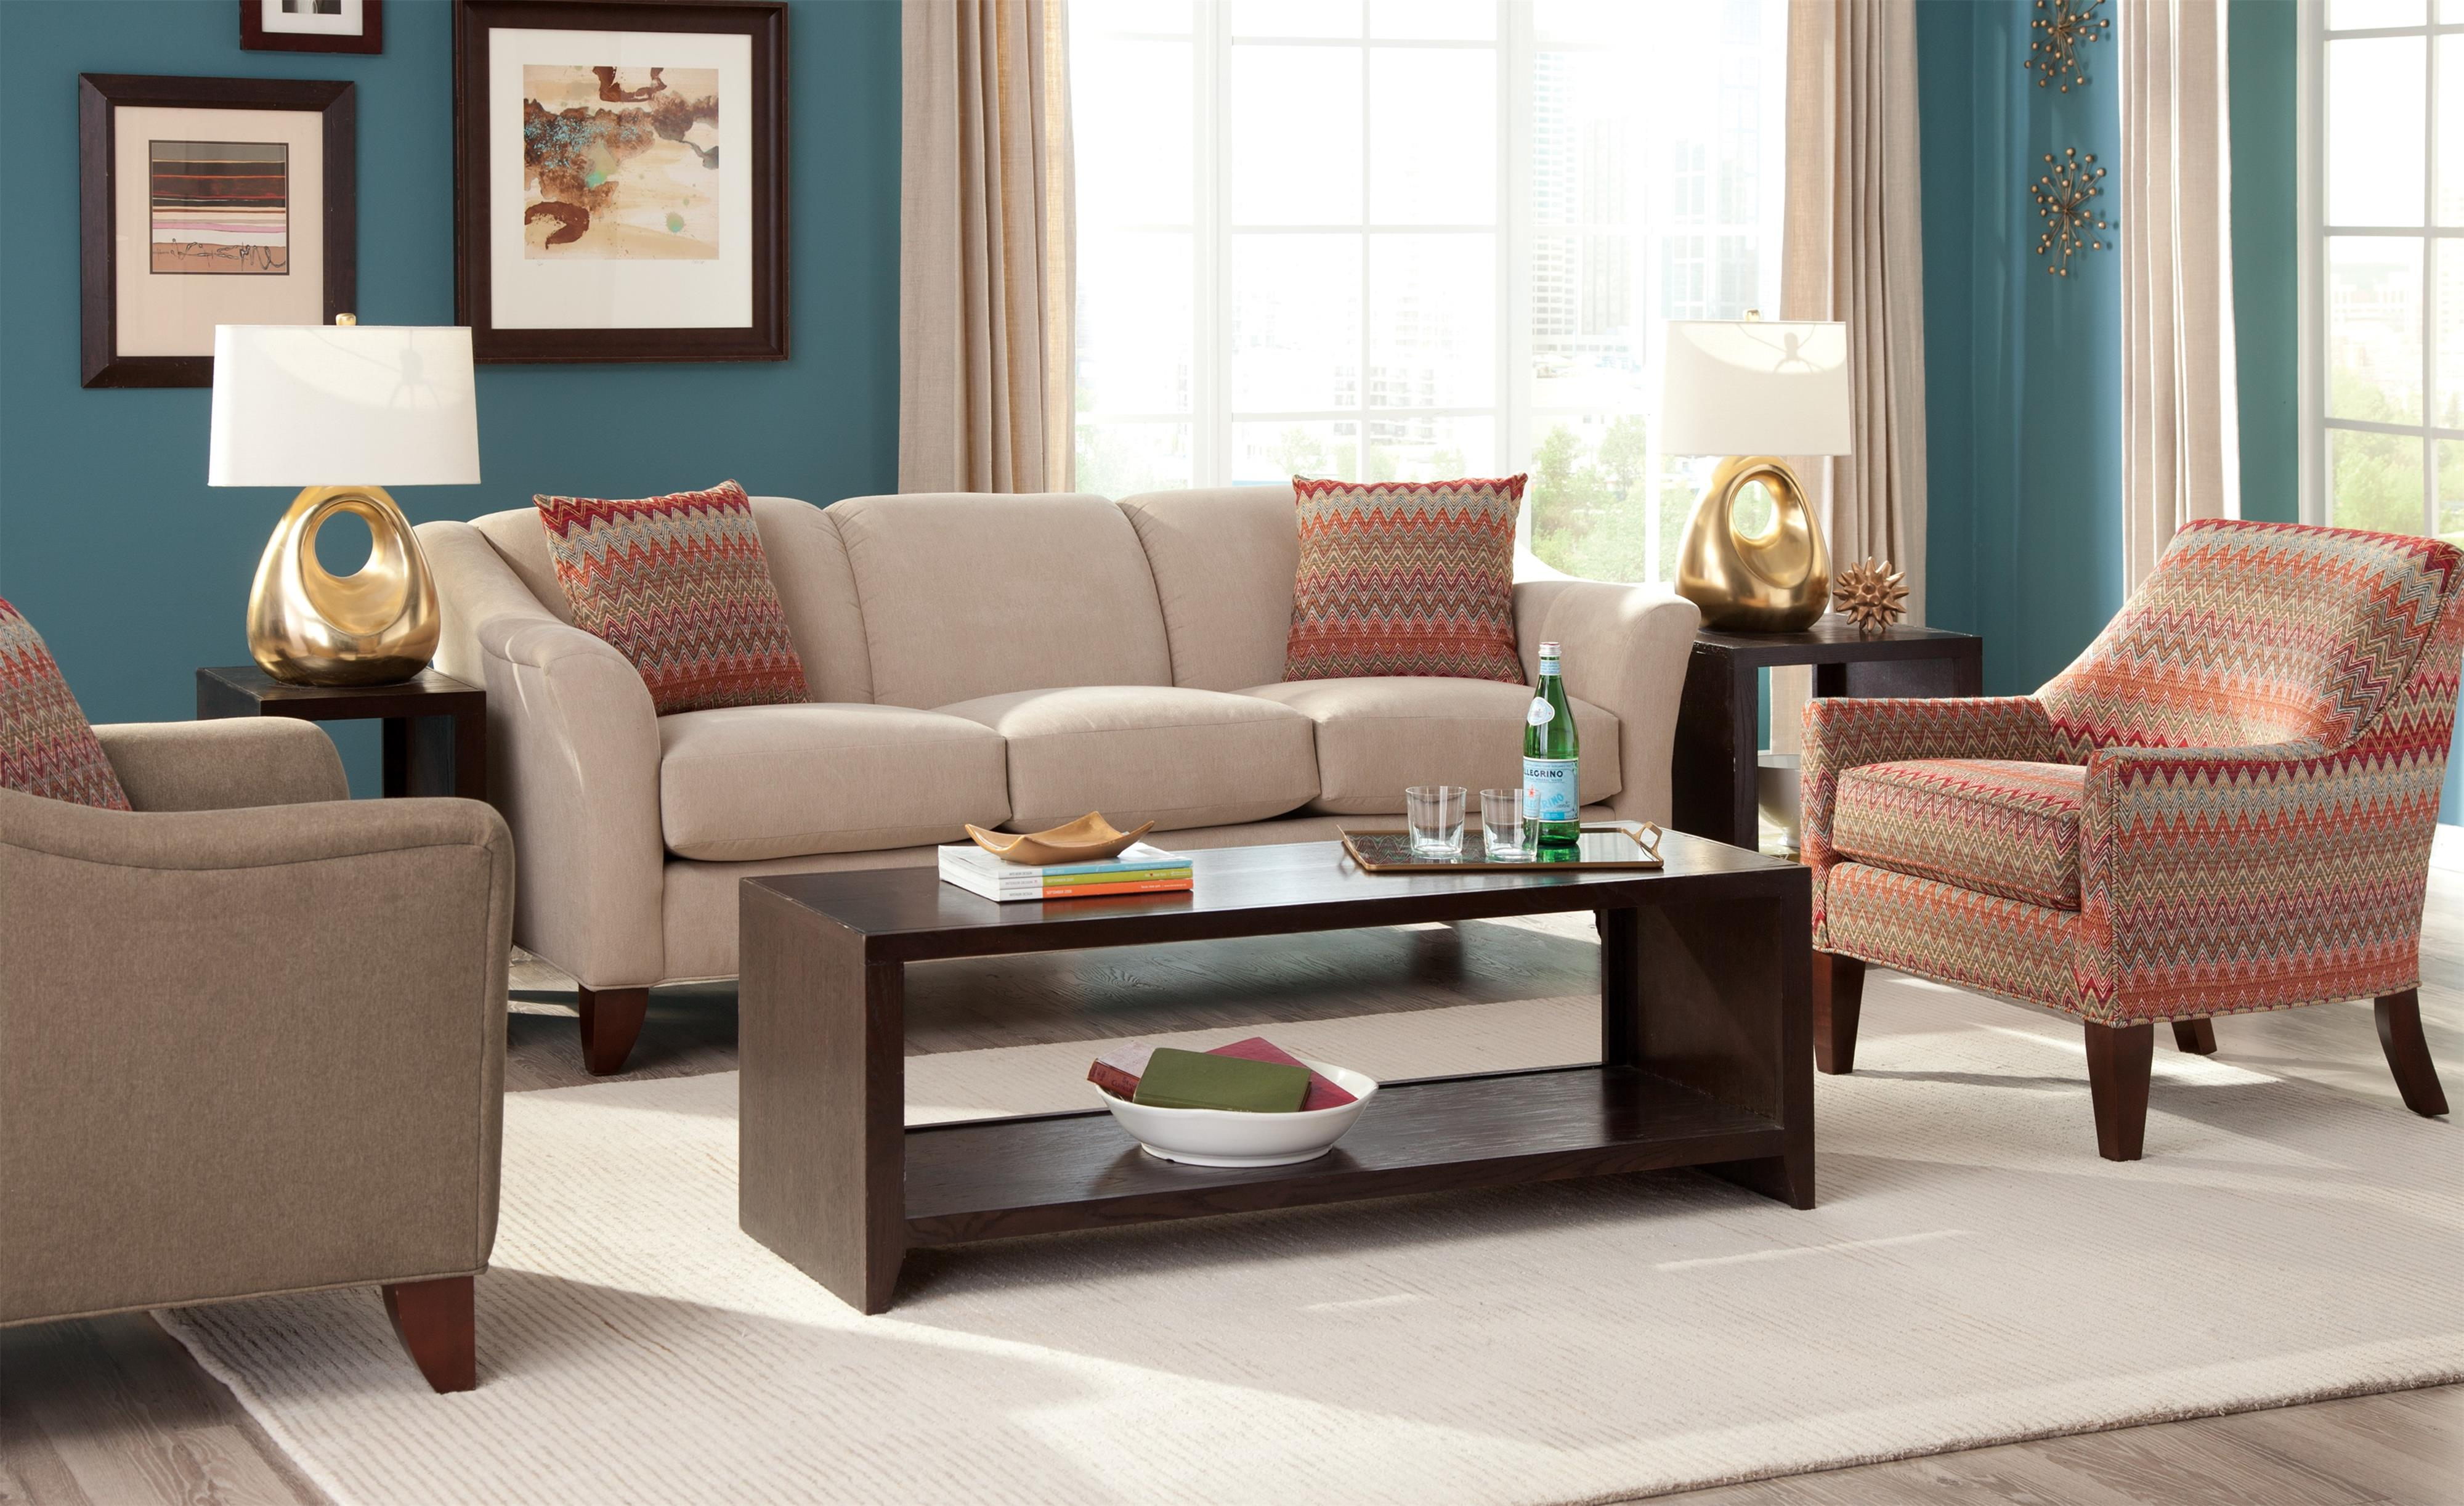 Craftmaster 7844 stationary living room group zak 39 s fine for Living room furniture groups